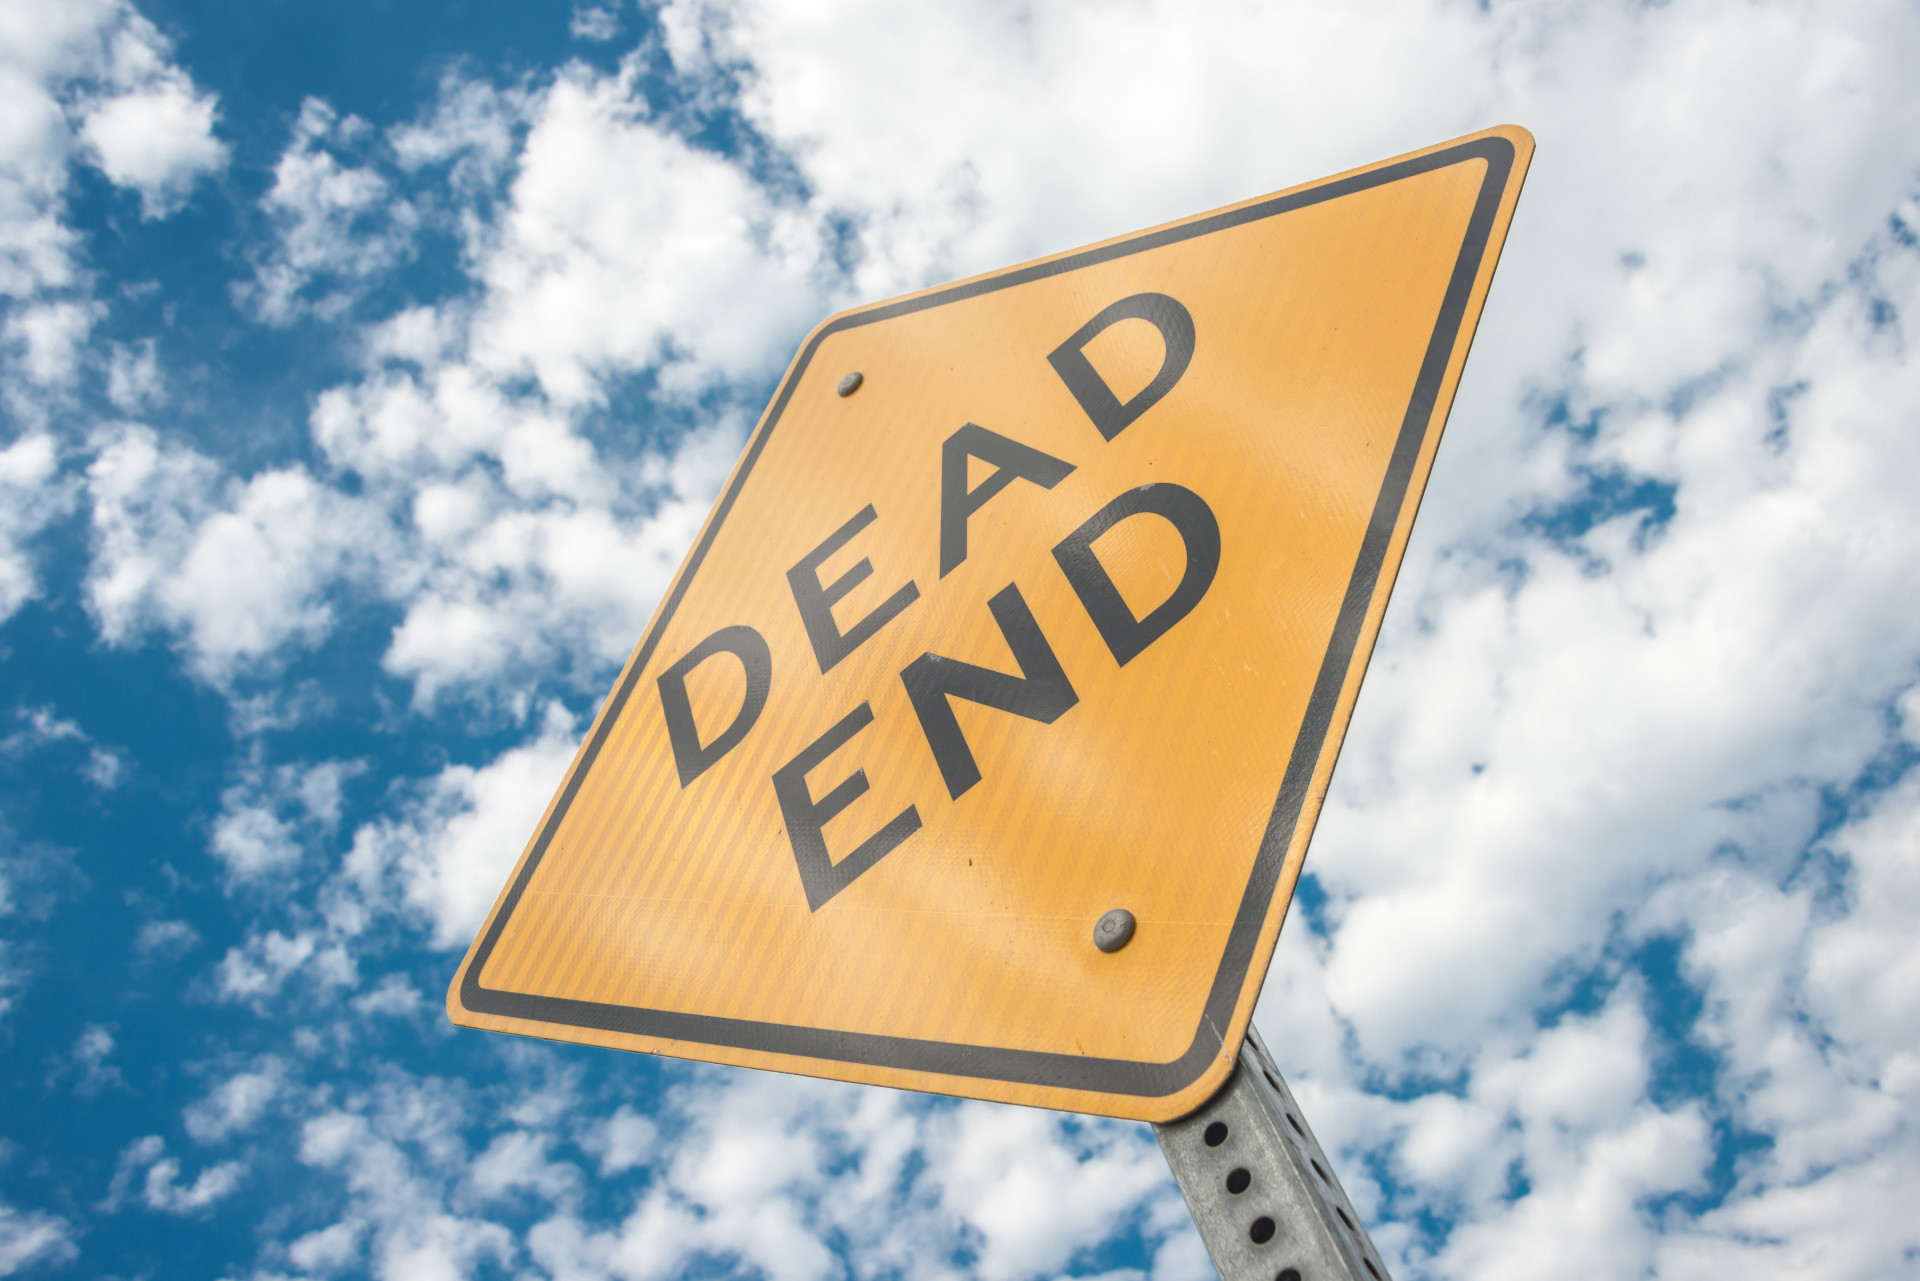 Mistakes lead to dead ends. Here's how to avoid them.